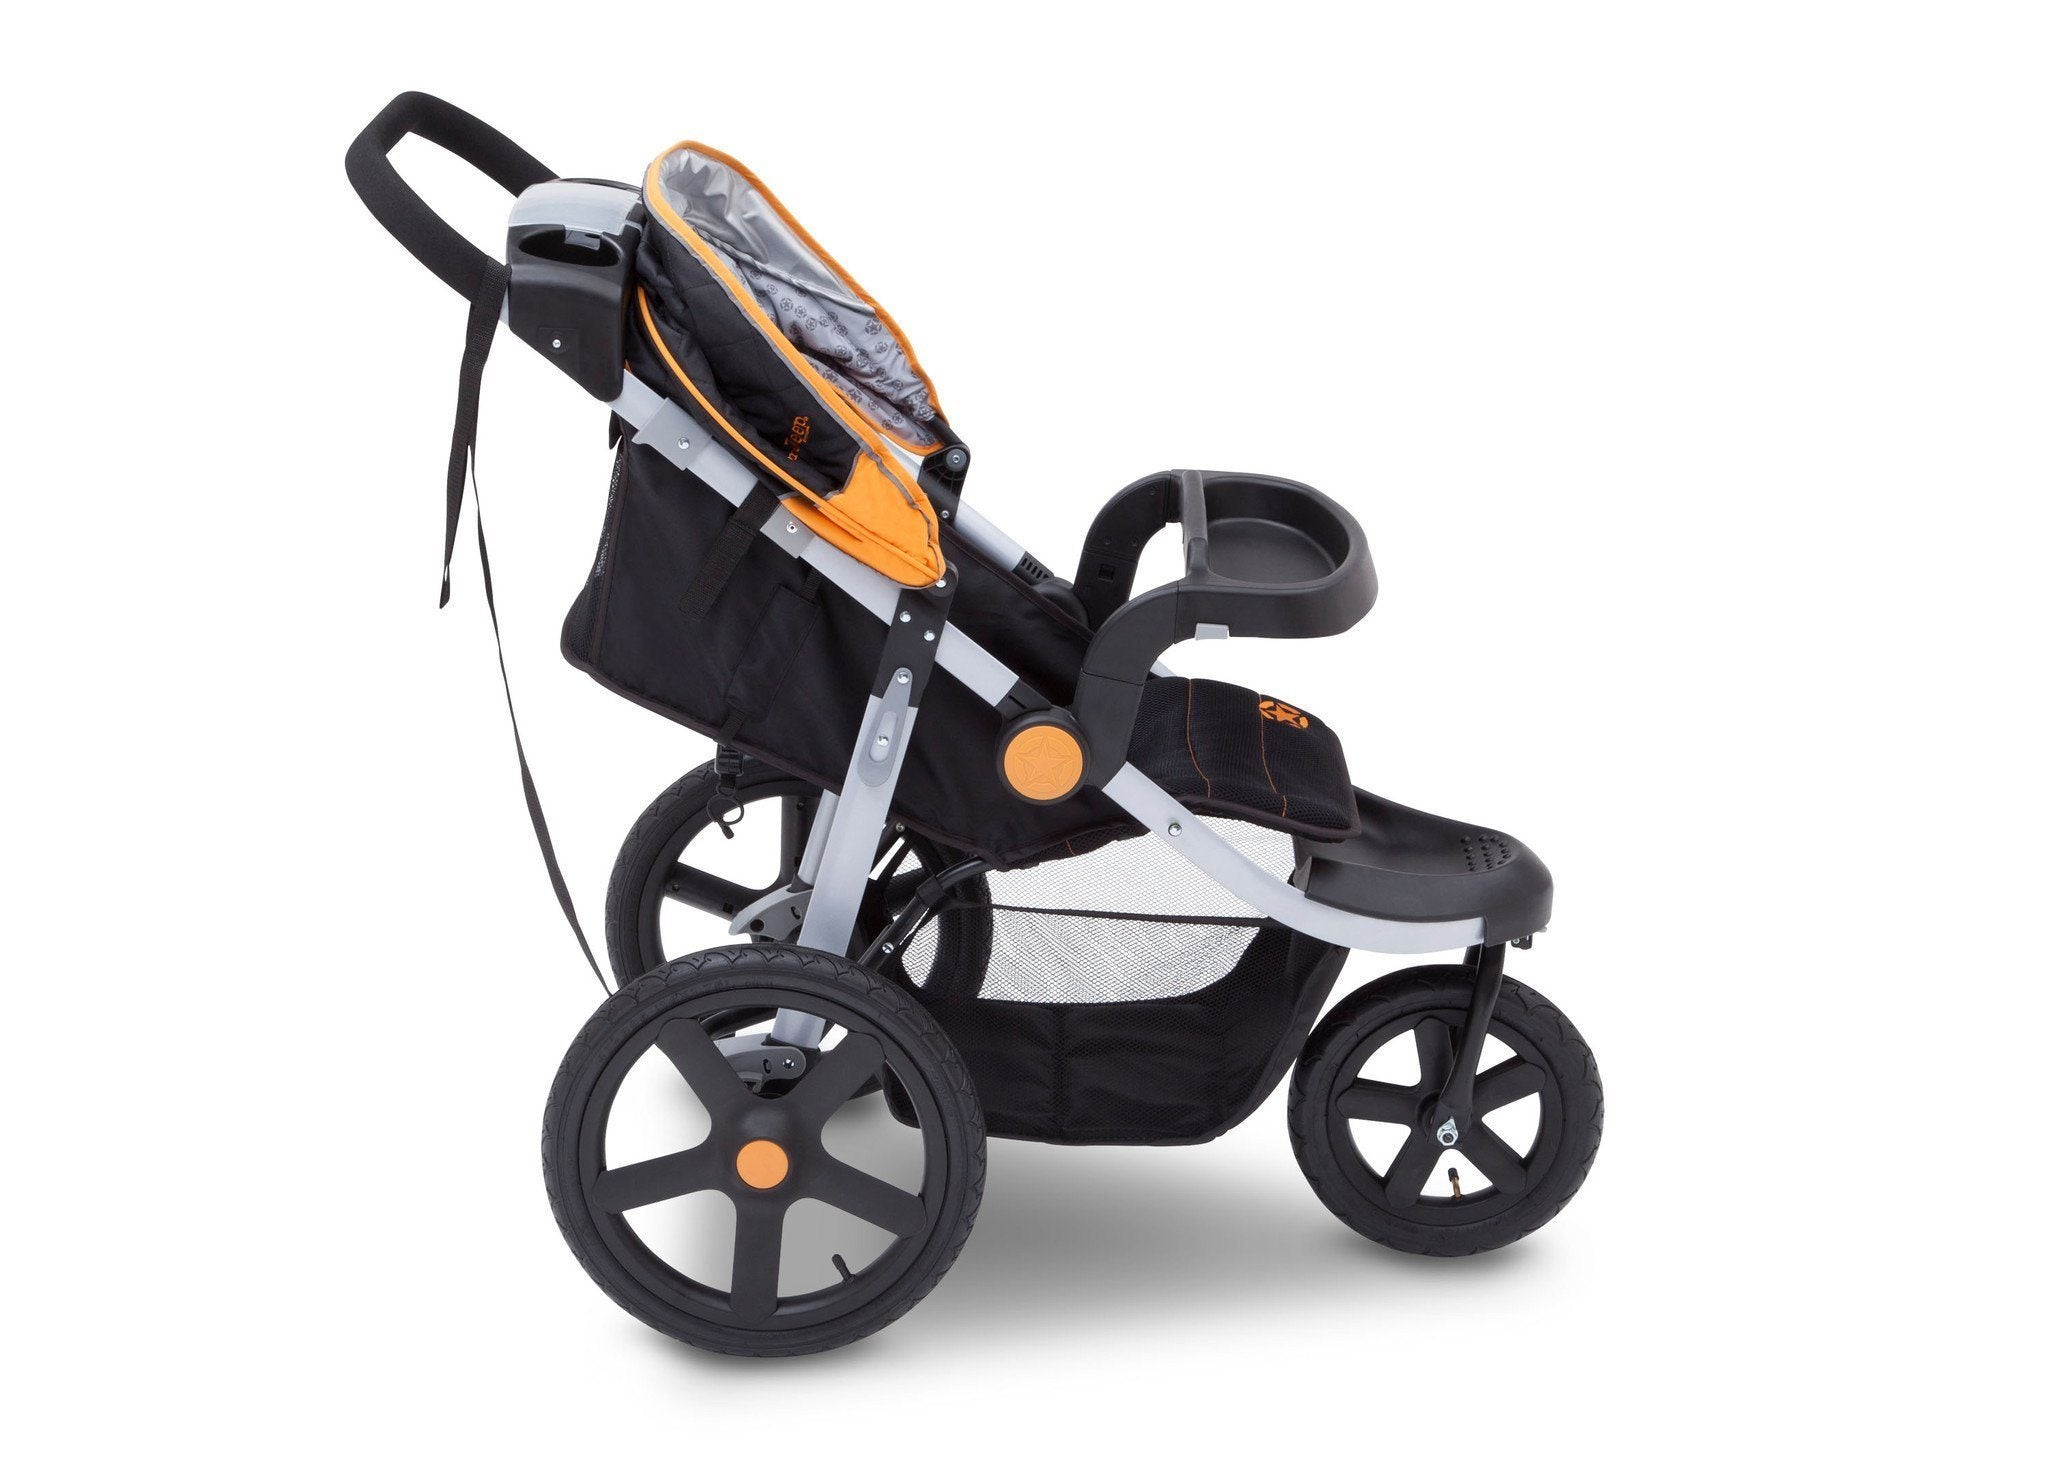 Jeep Adventure All Terrain Jogger Stroller by Delta Children, Galaxy (850), with multi-position reclining seat